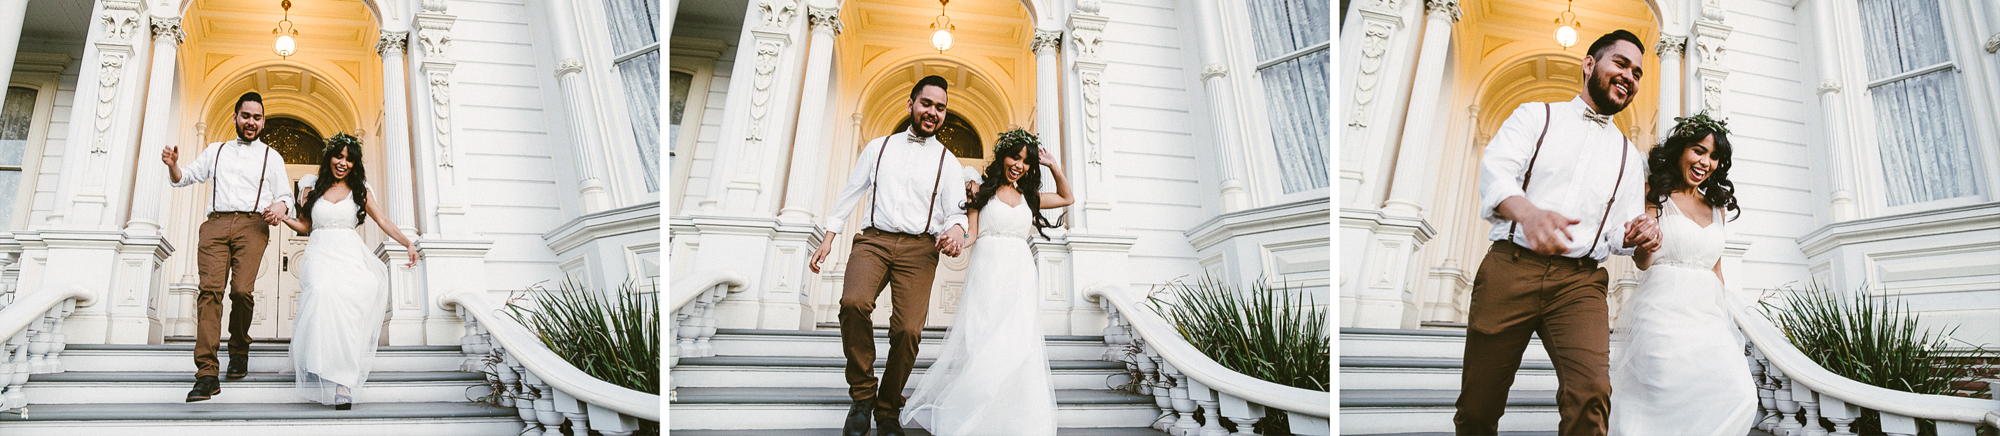 Isaiah & Taylor Photography - Los Angeles - Destination Wedding Photographers - Heritage Square Museum -82.jpg